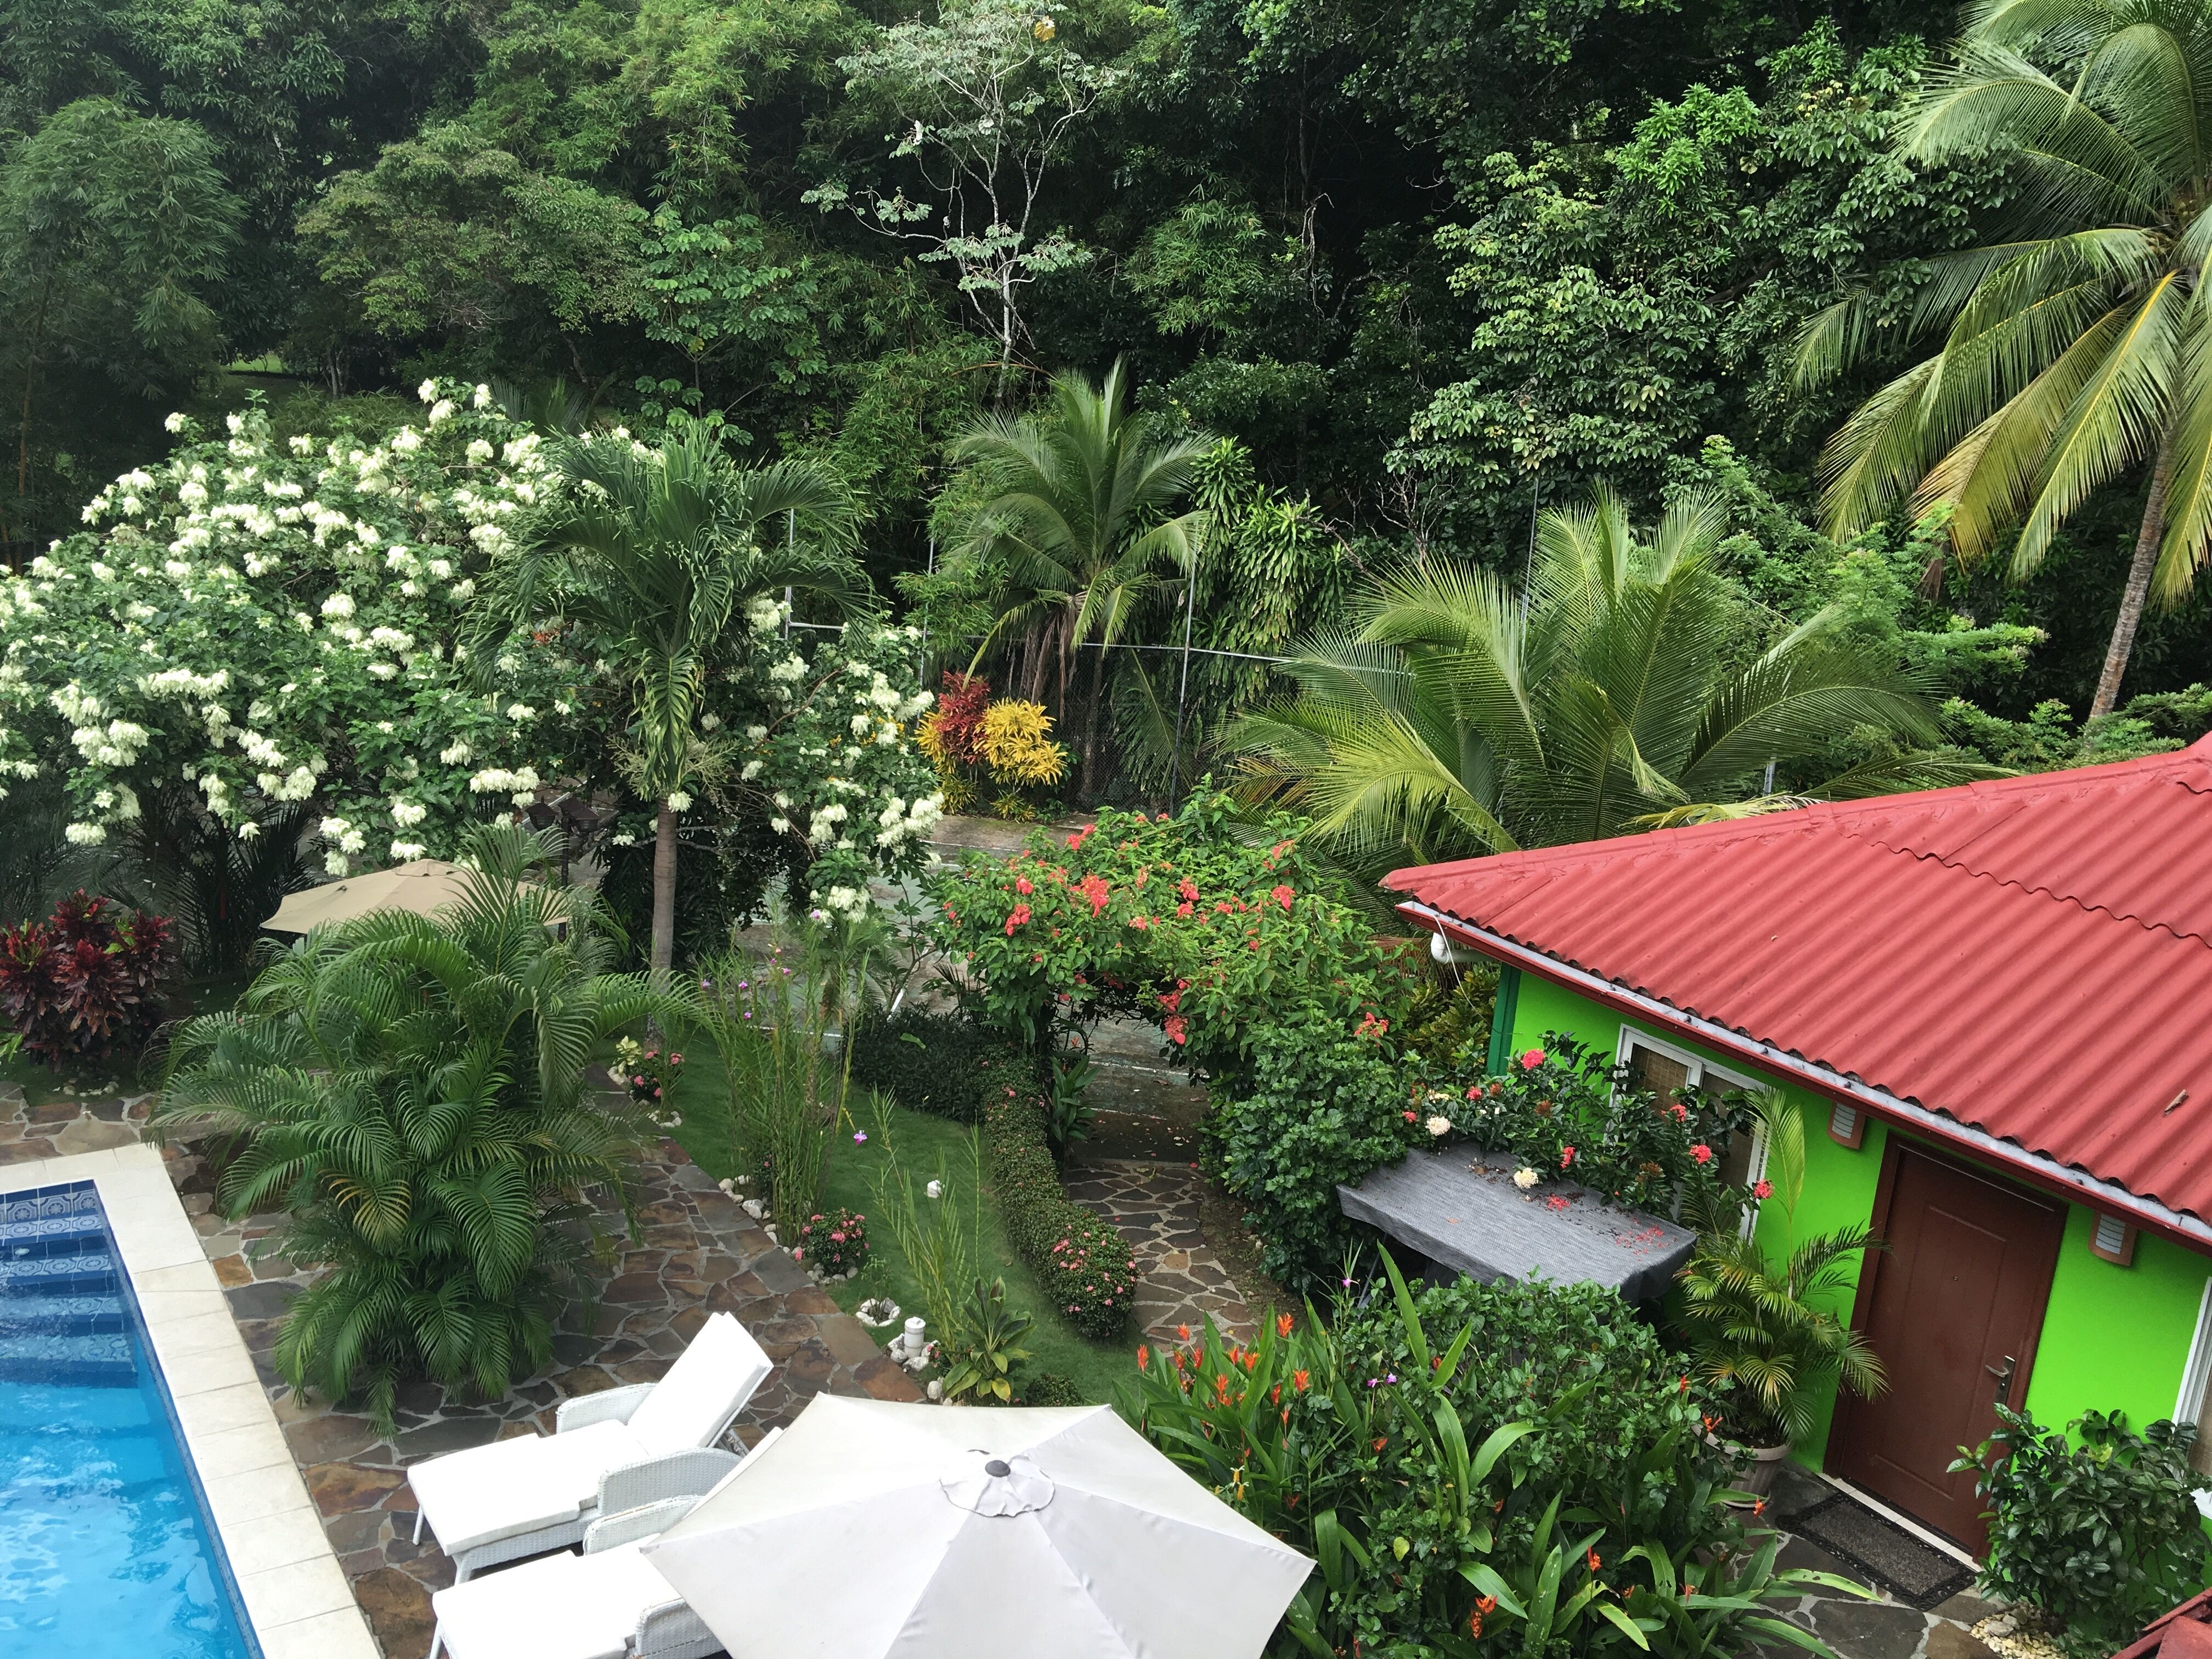 COCONUT LODGE BED & BREAKFAST